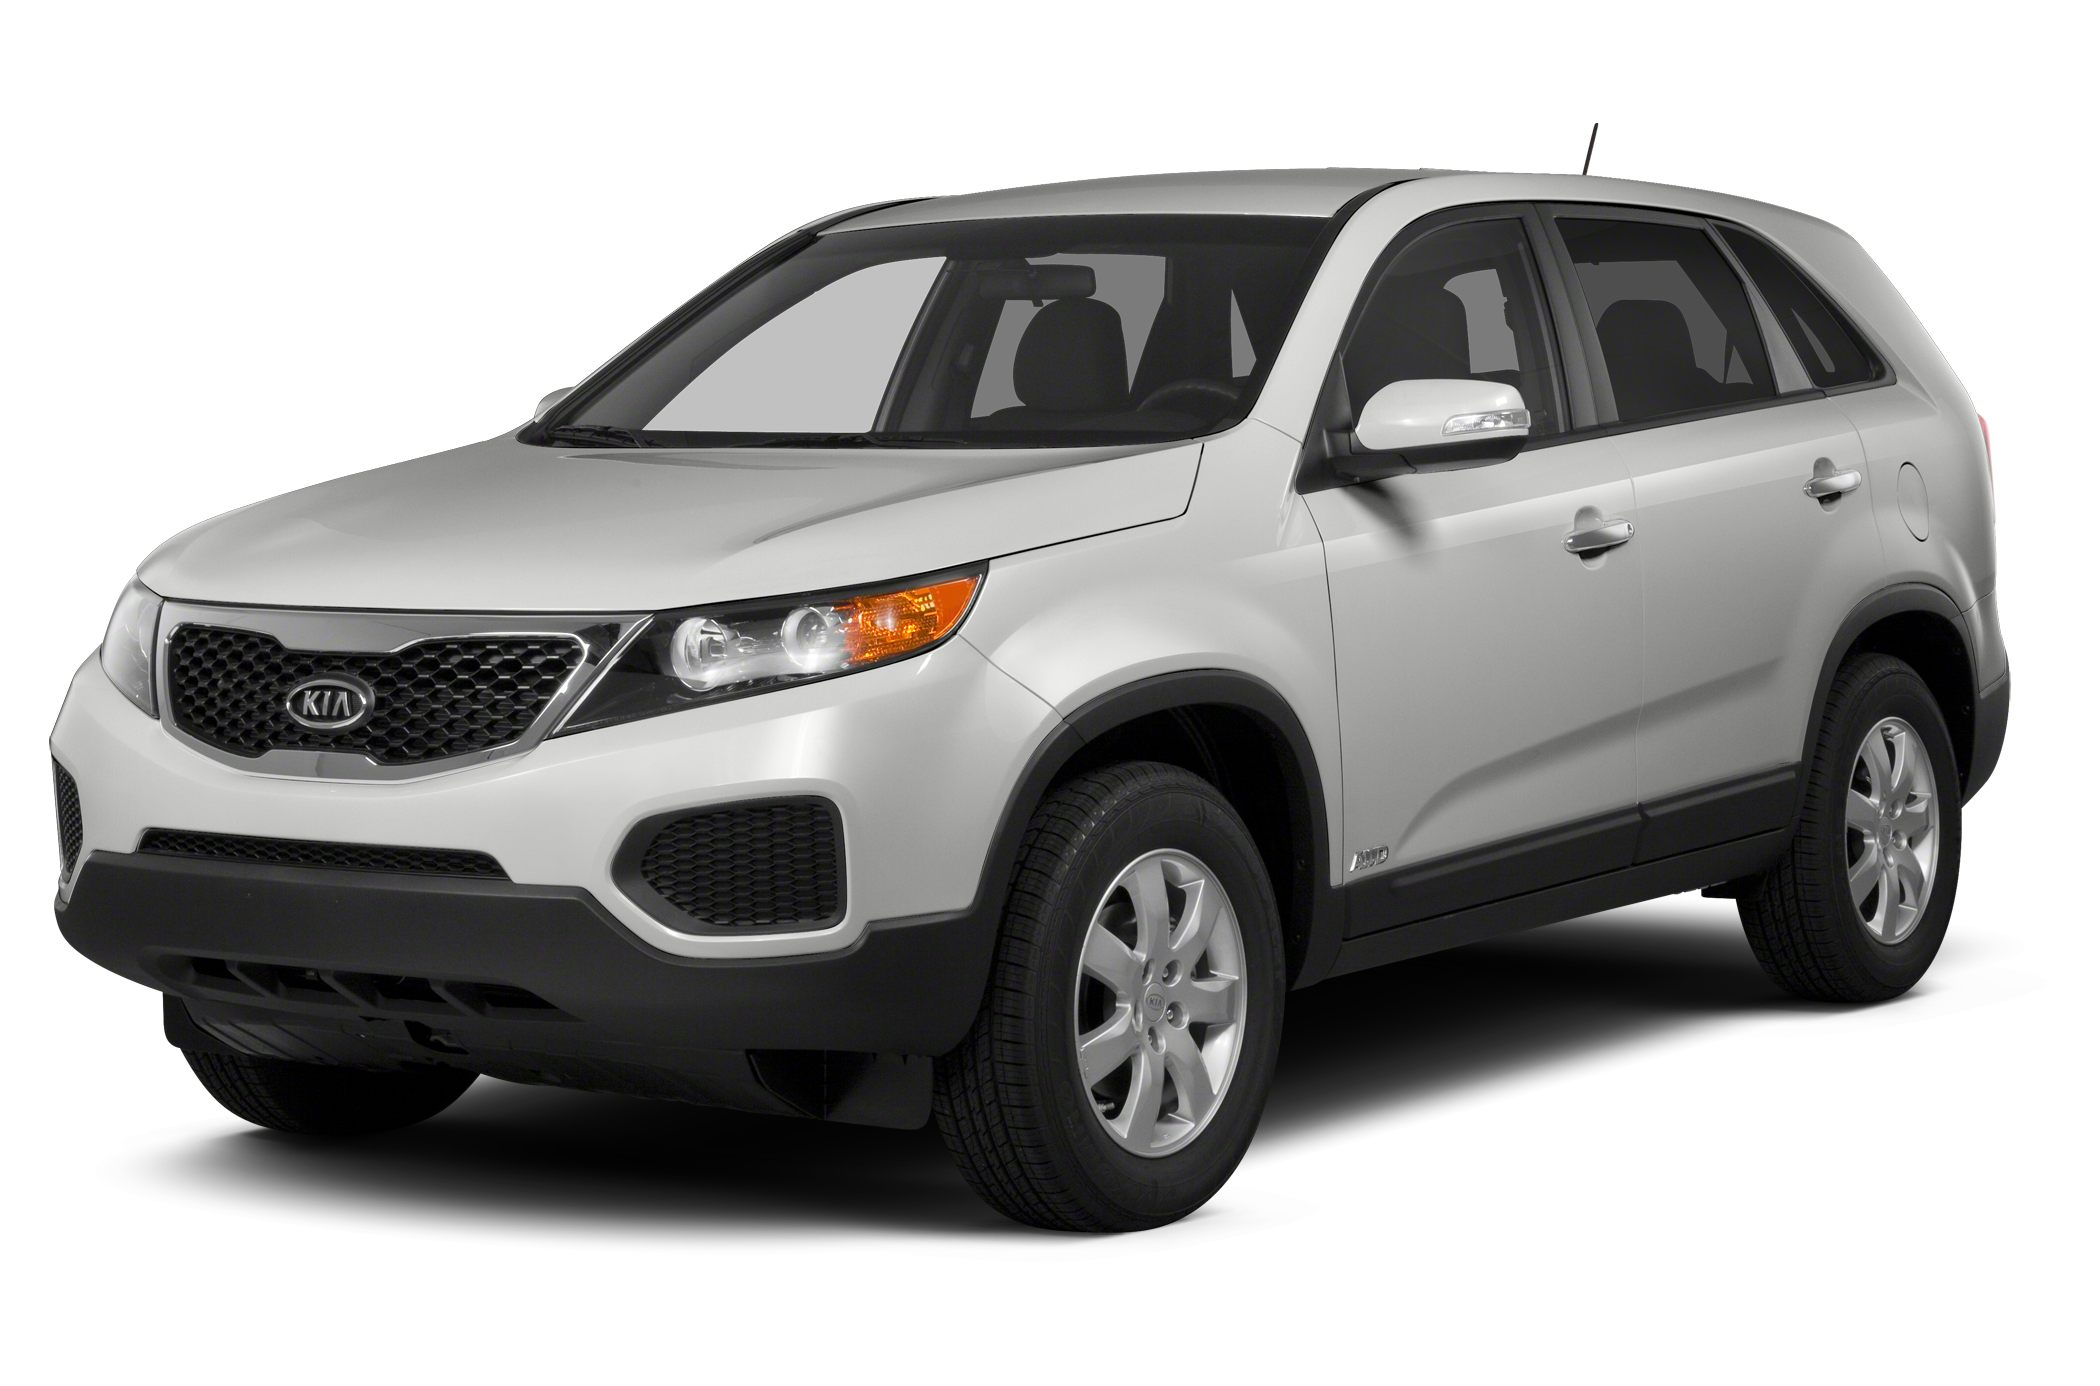 2013 Kia Sorento LX 2013 Kia Sorento LX in Satin Metal USB Port MP3- USB  I-Pod Ready ONE OW